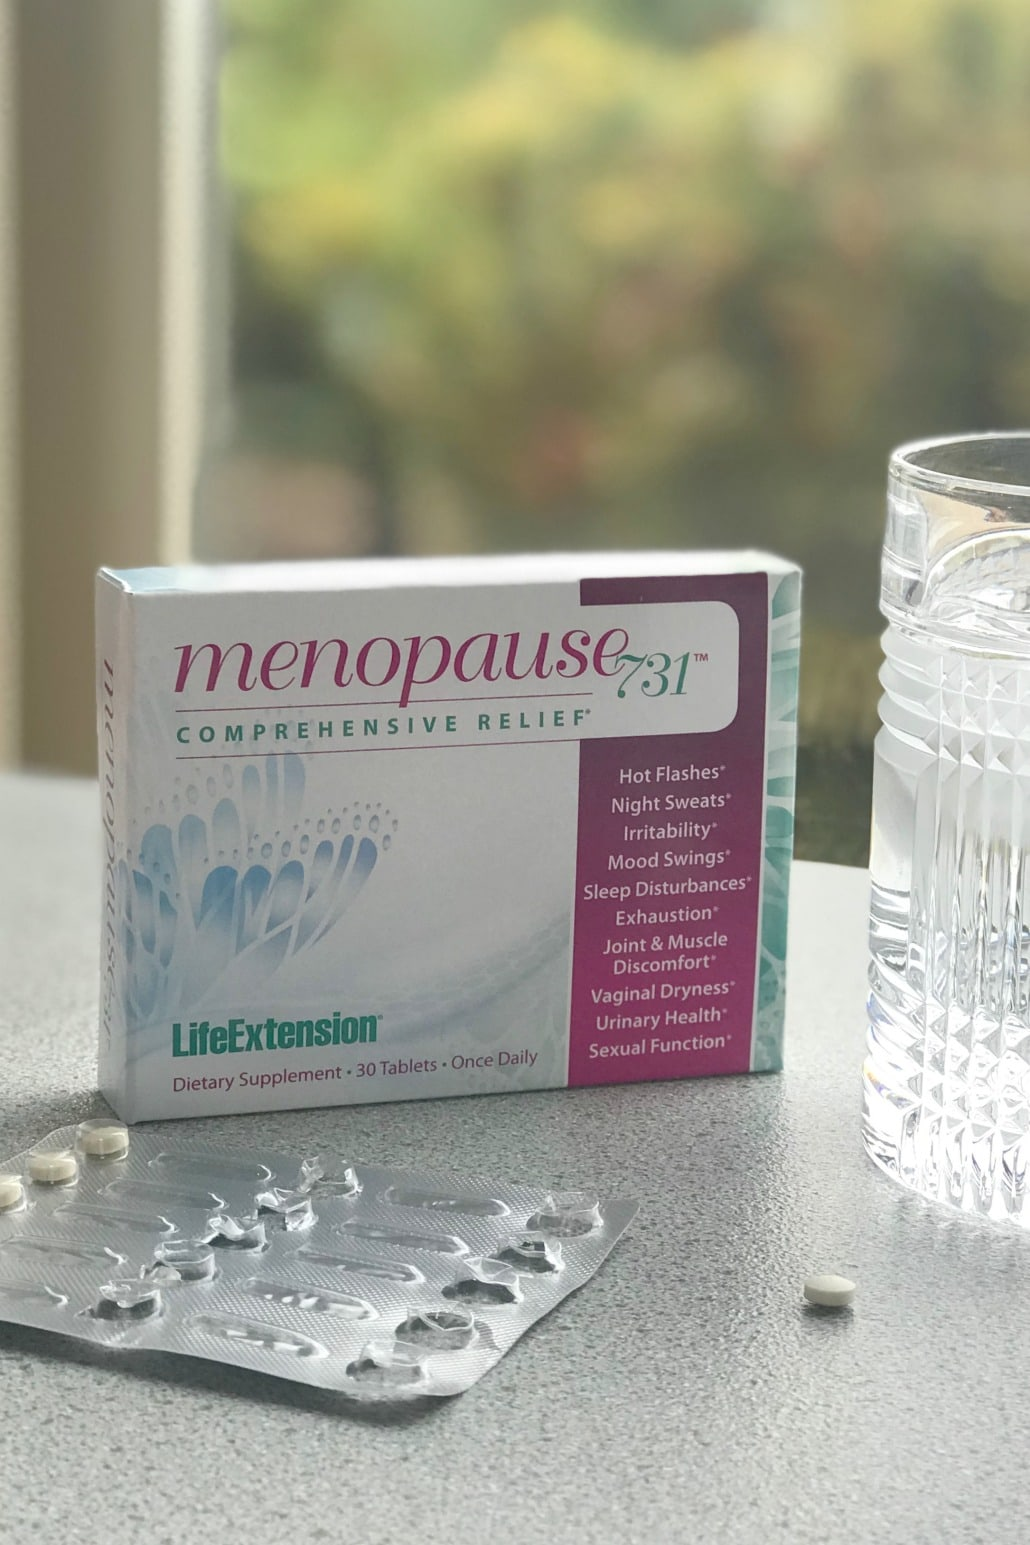 Menopause 731 supplement on A Well Styled Life